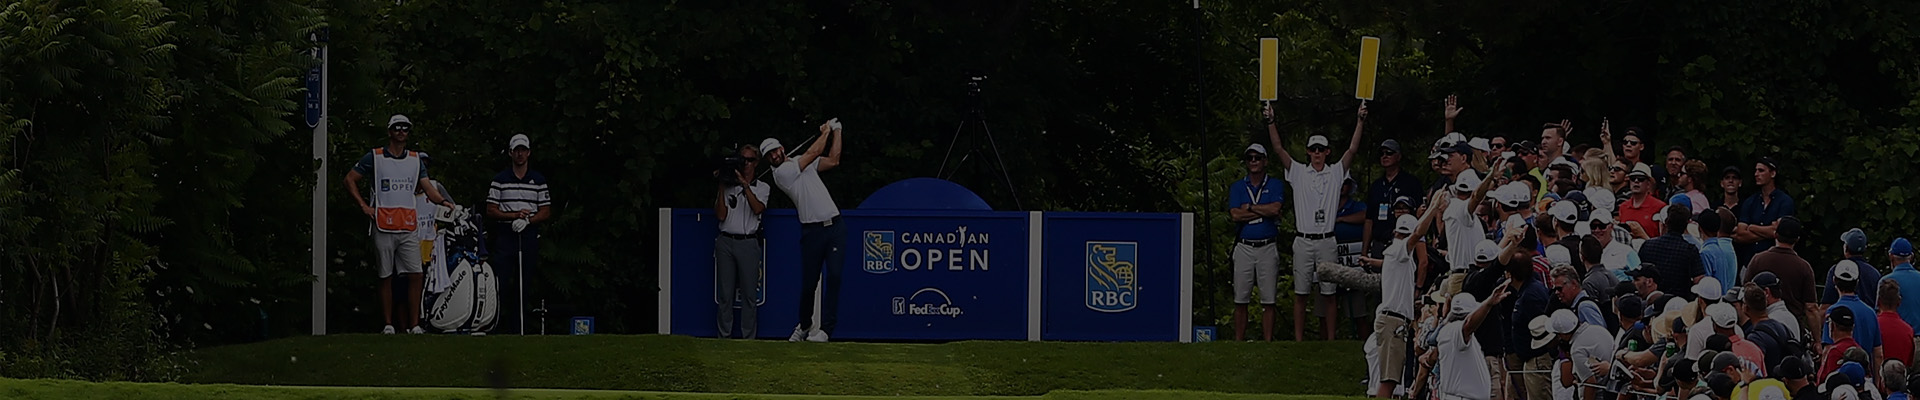 Dustin Johnson secures 3rd victory of the season at RBC Canadian Open